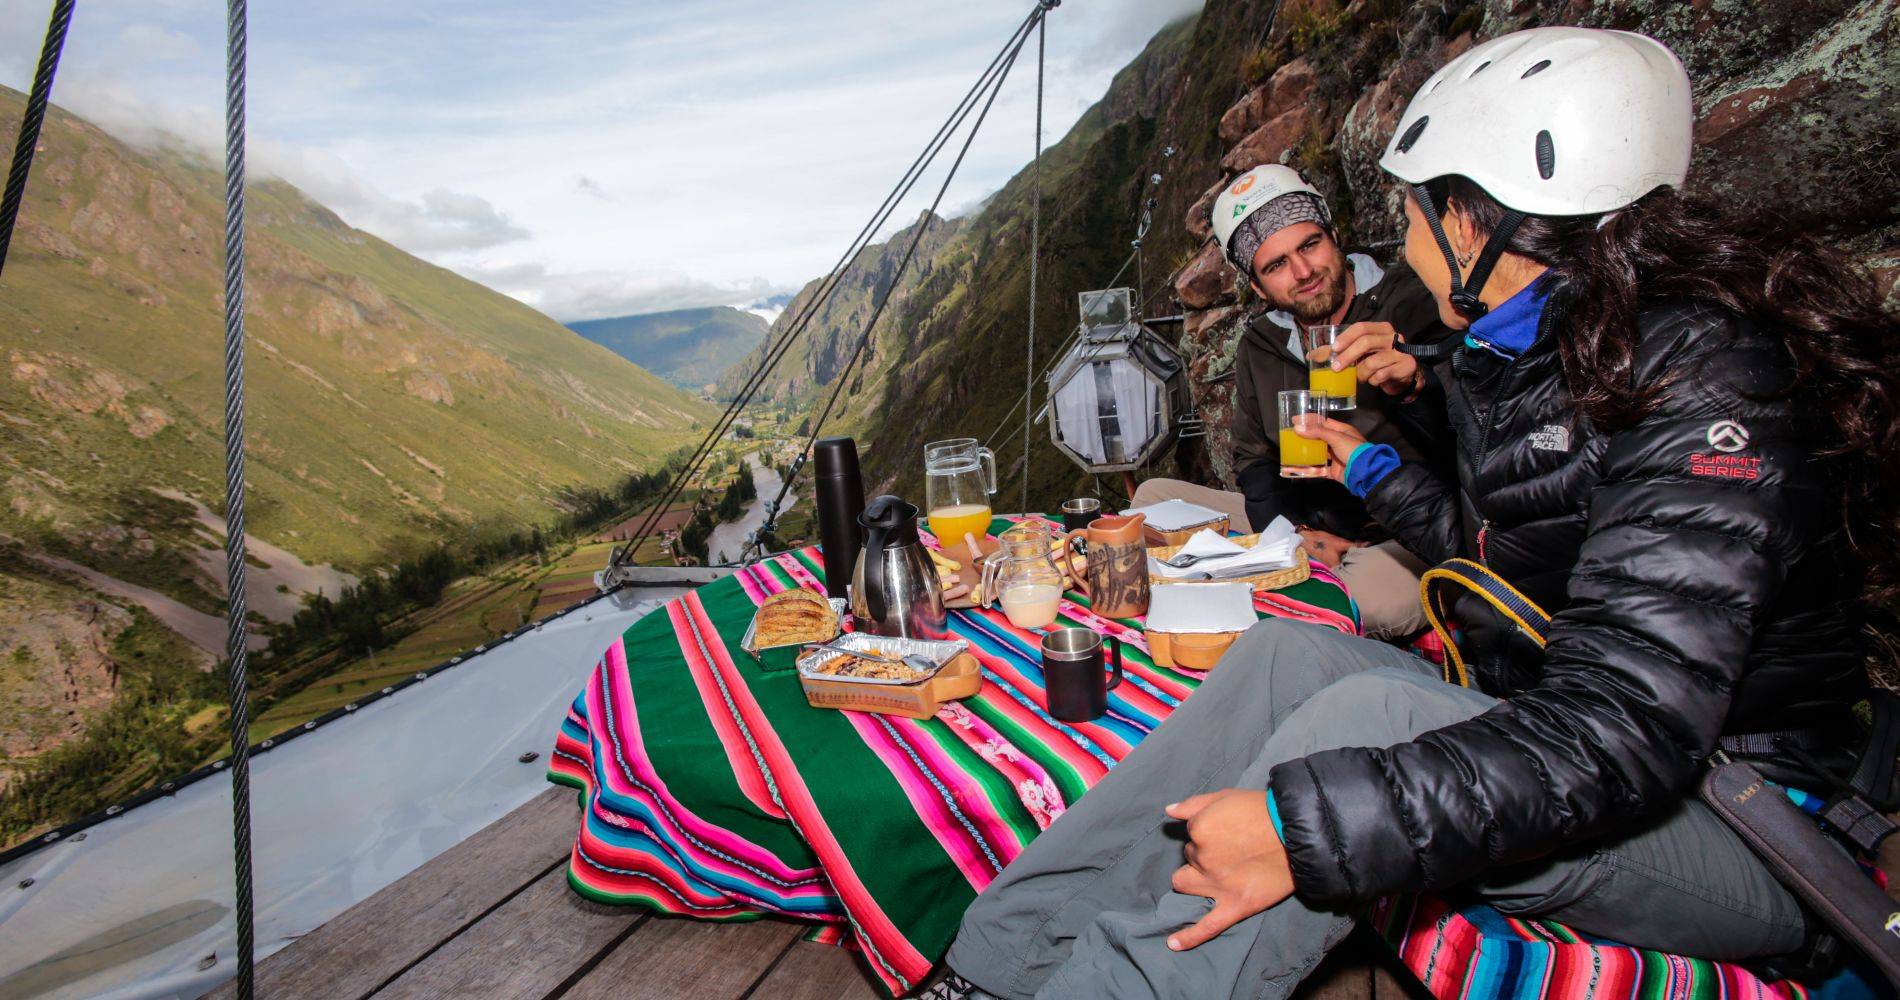 The Overnight Stay in Unique Skylodge